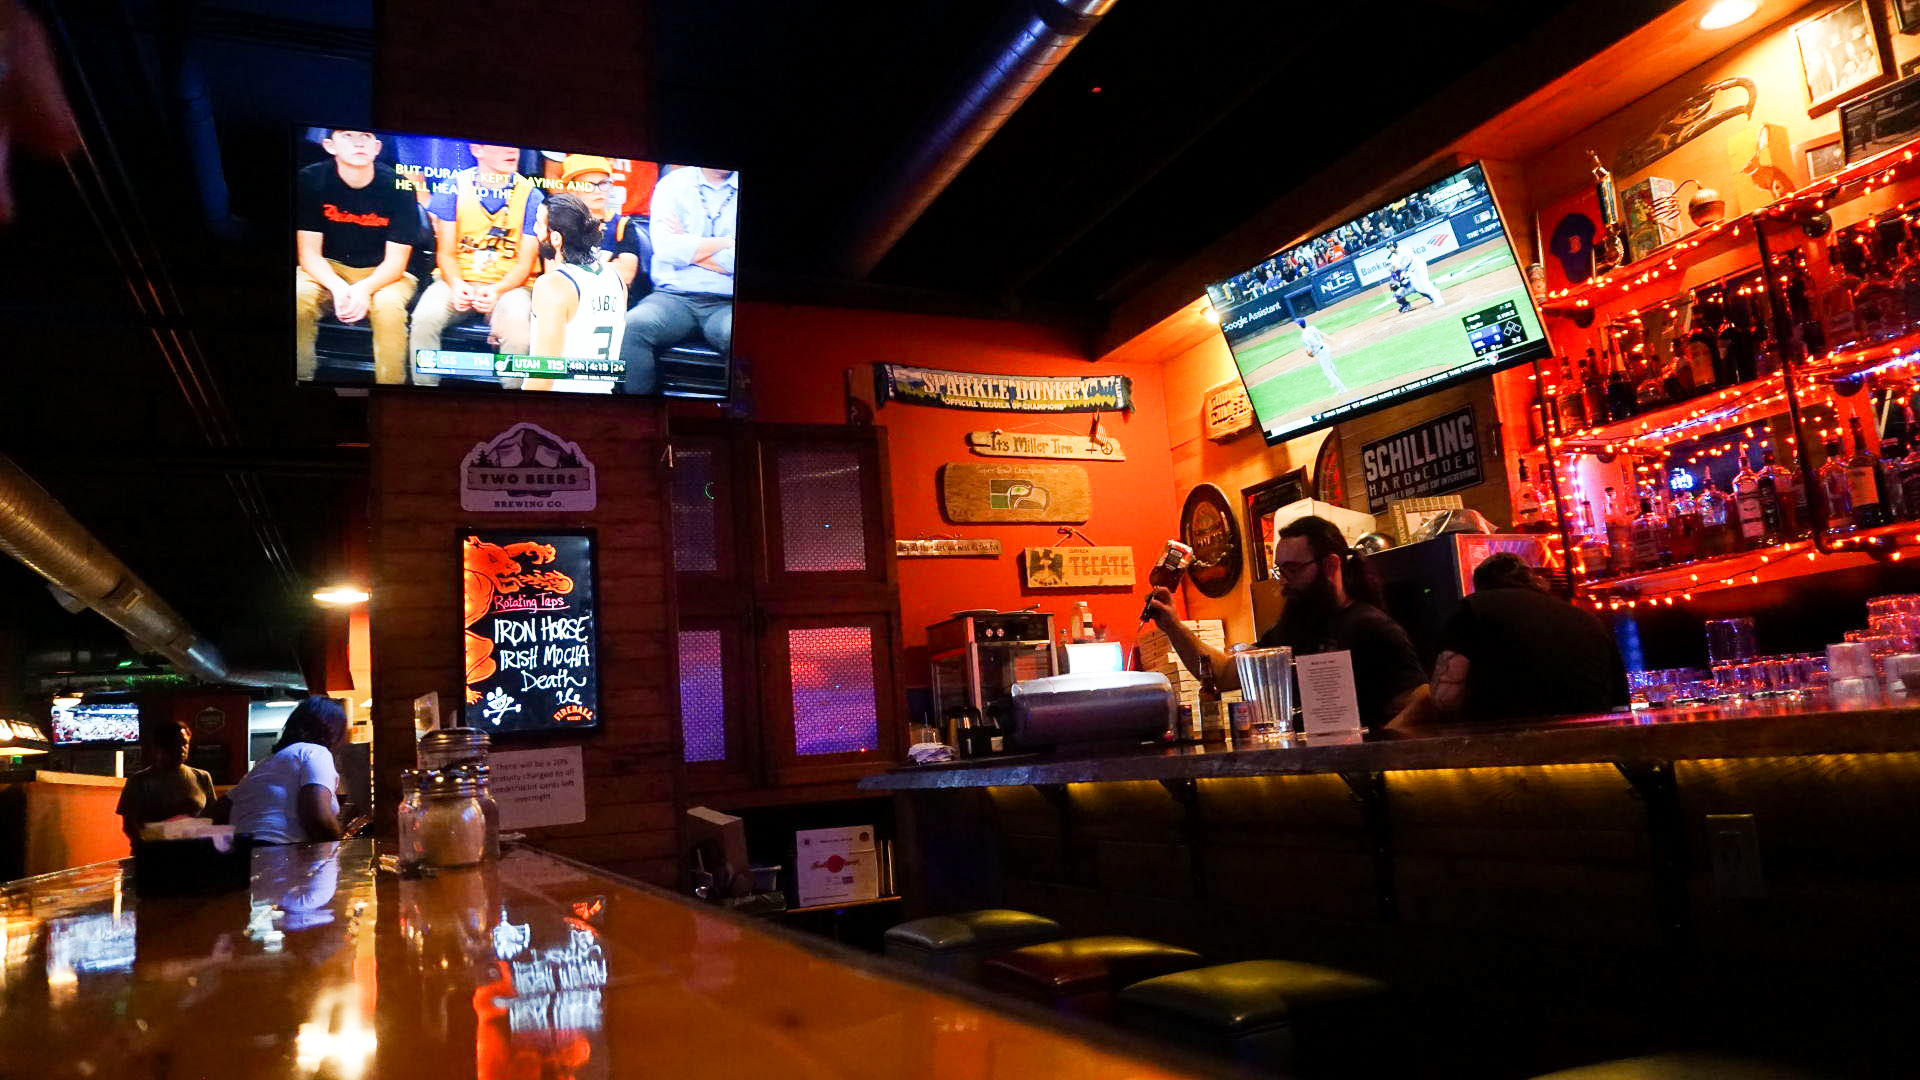 There are many important considerations when choosing a bar to watch the Big Game at, like seating, the menu, and of course, the televisions.